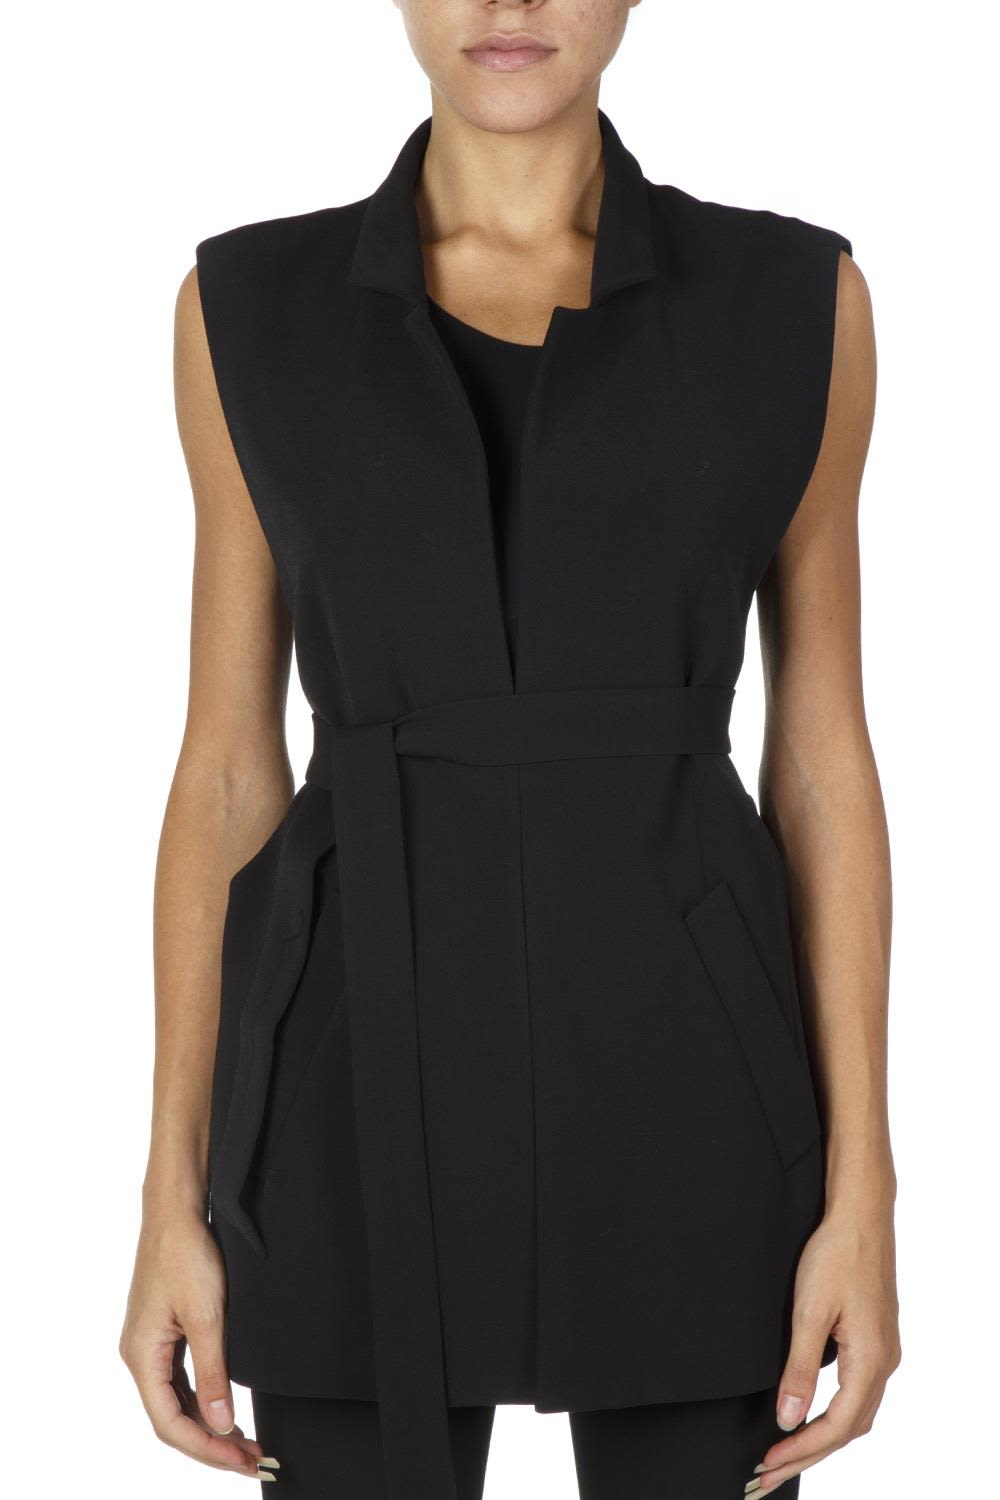 Maison Margiela | Maison Margiela Black Vest Jacket Model | Clouty